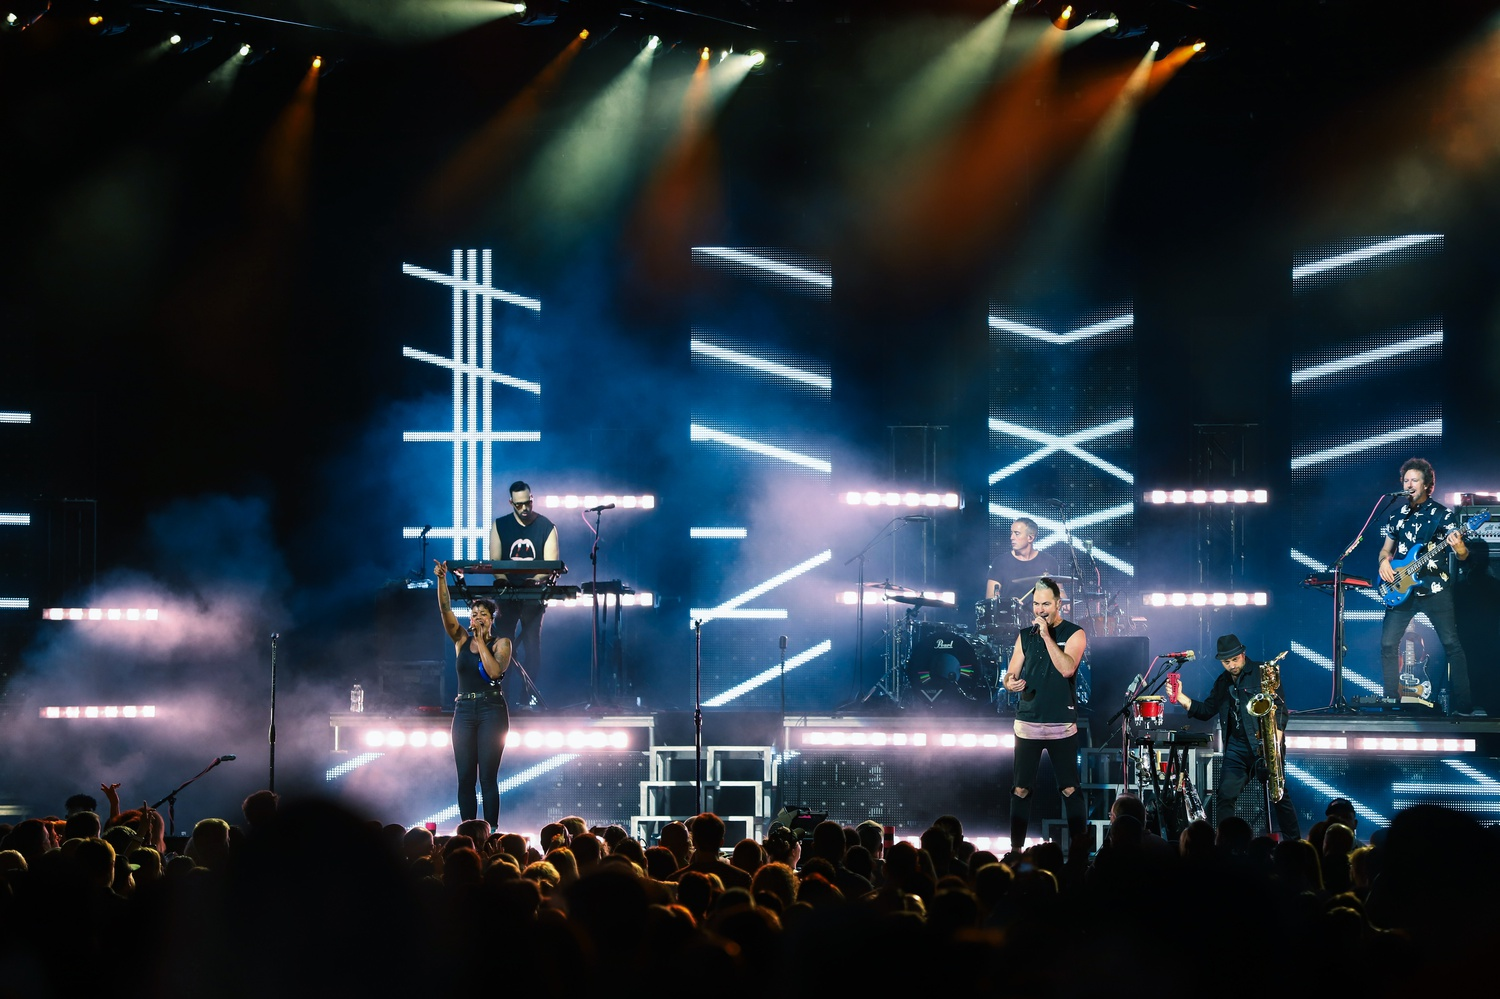 Indie pop band Fitz and the Tantrums co-headlined the Young the Giant concert at Rockland Trust Bank Pavilion in June.